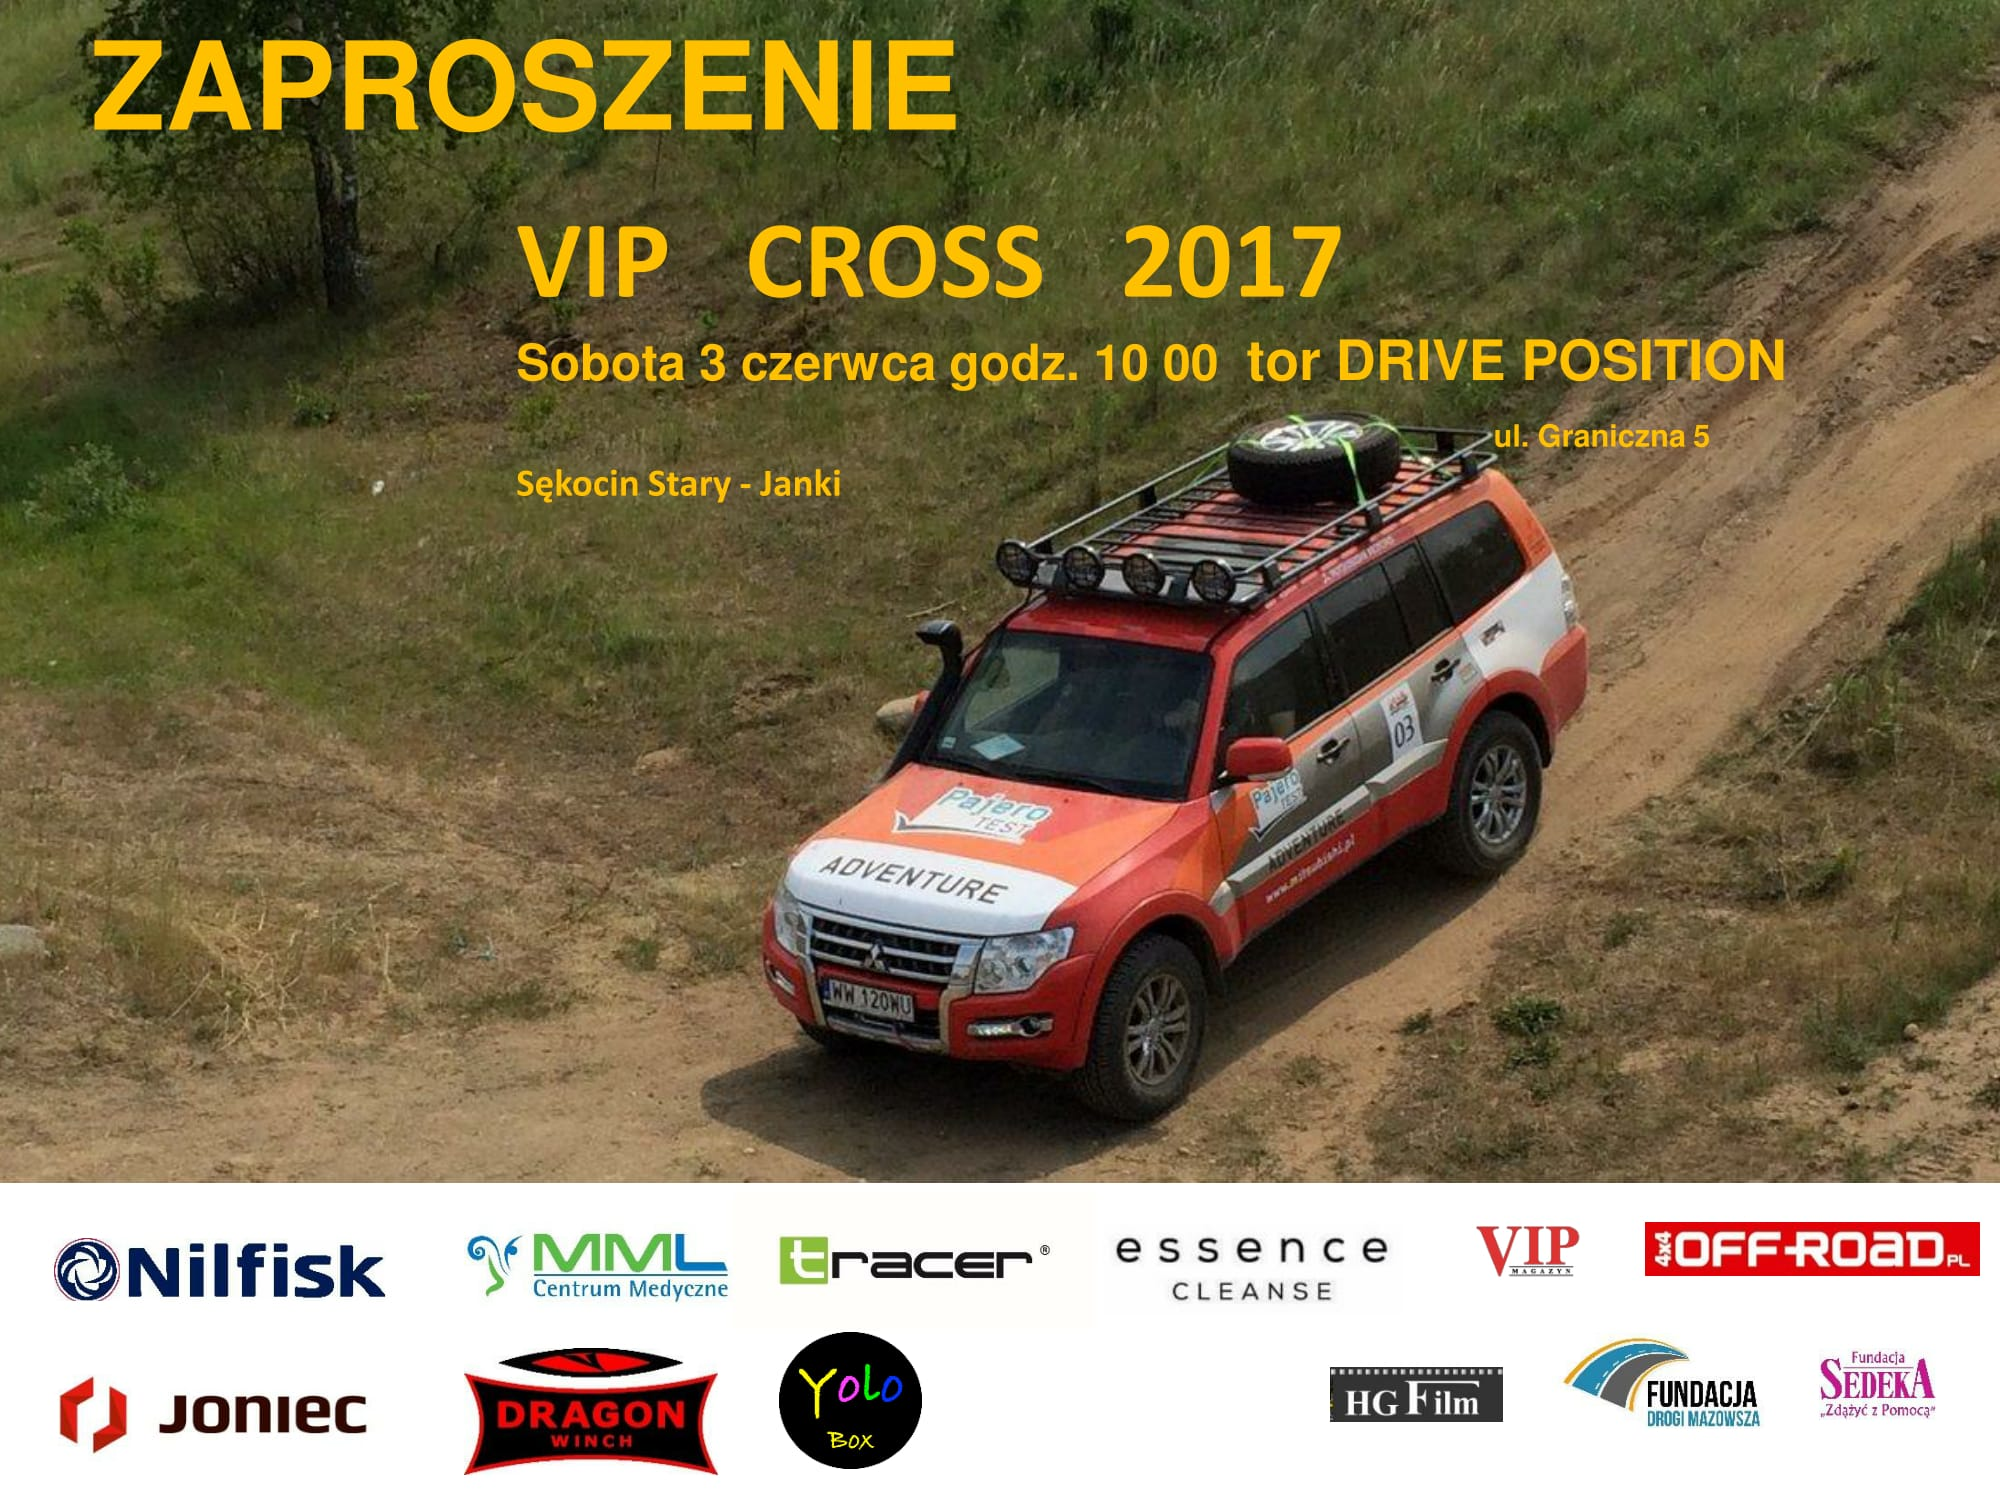 DRAGON WINCH - Partner rajdu VIP CROSS 2017!